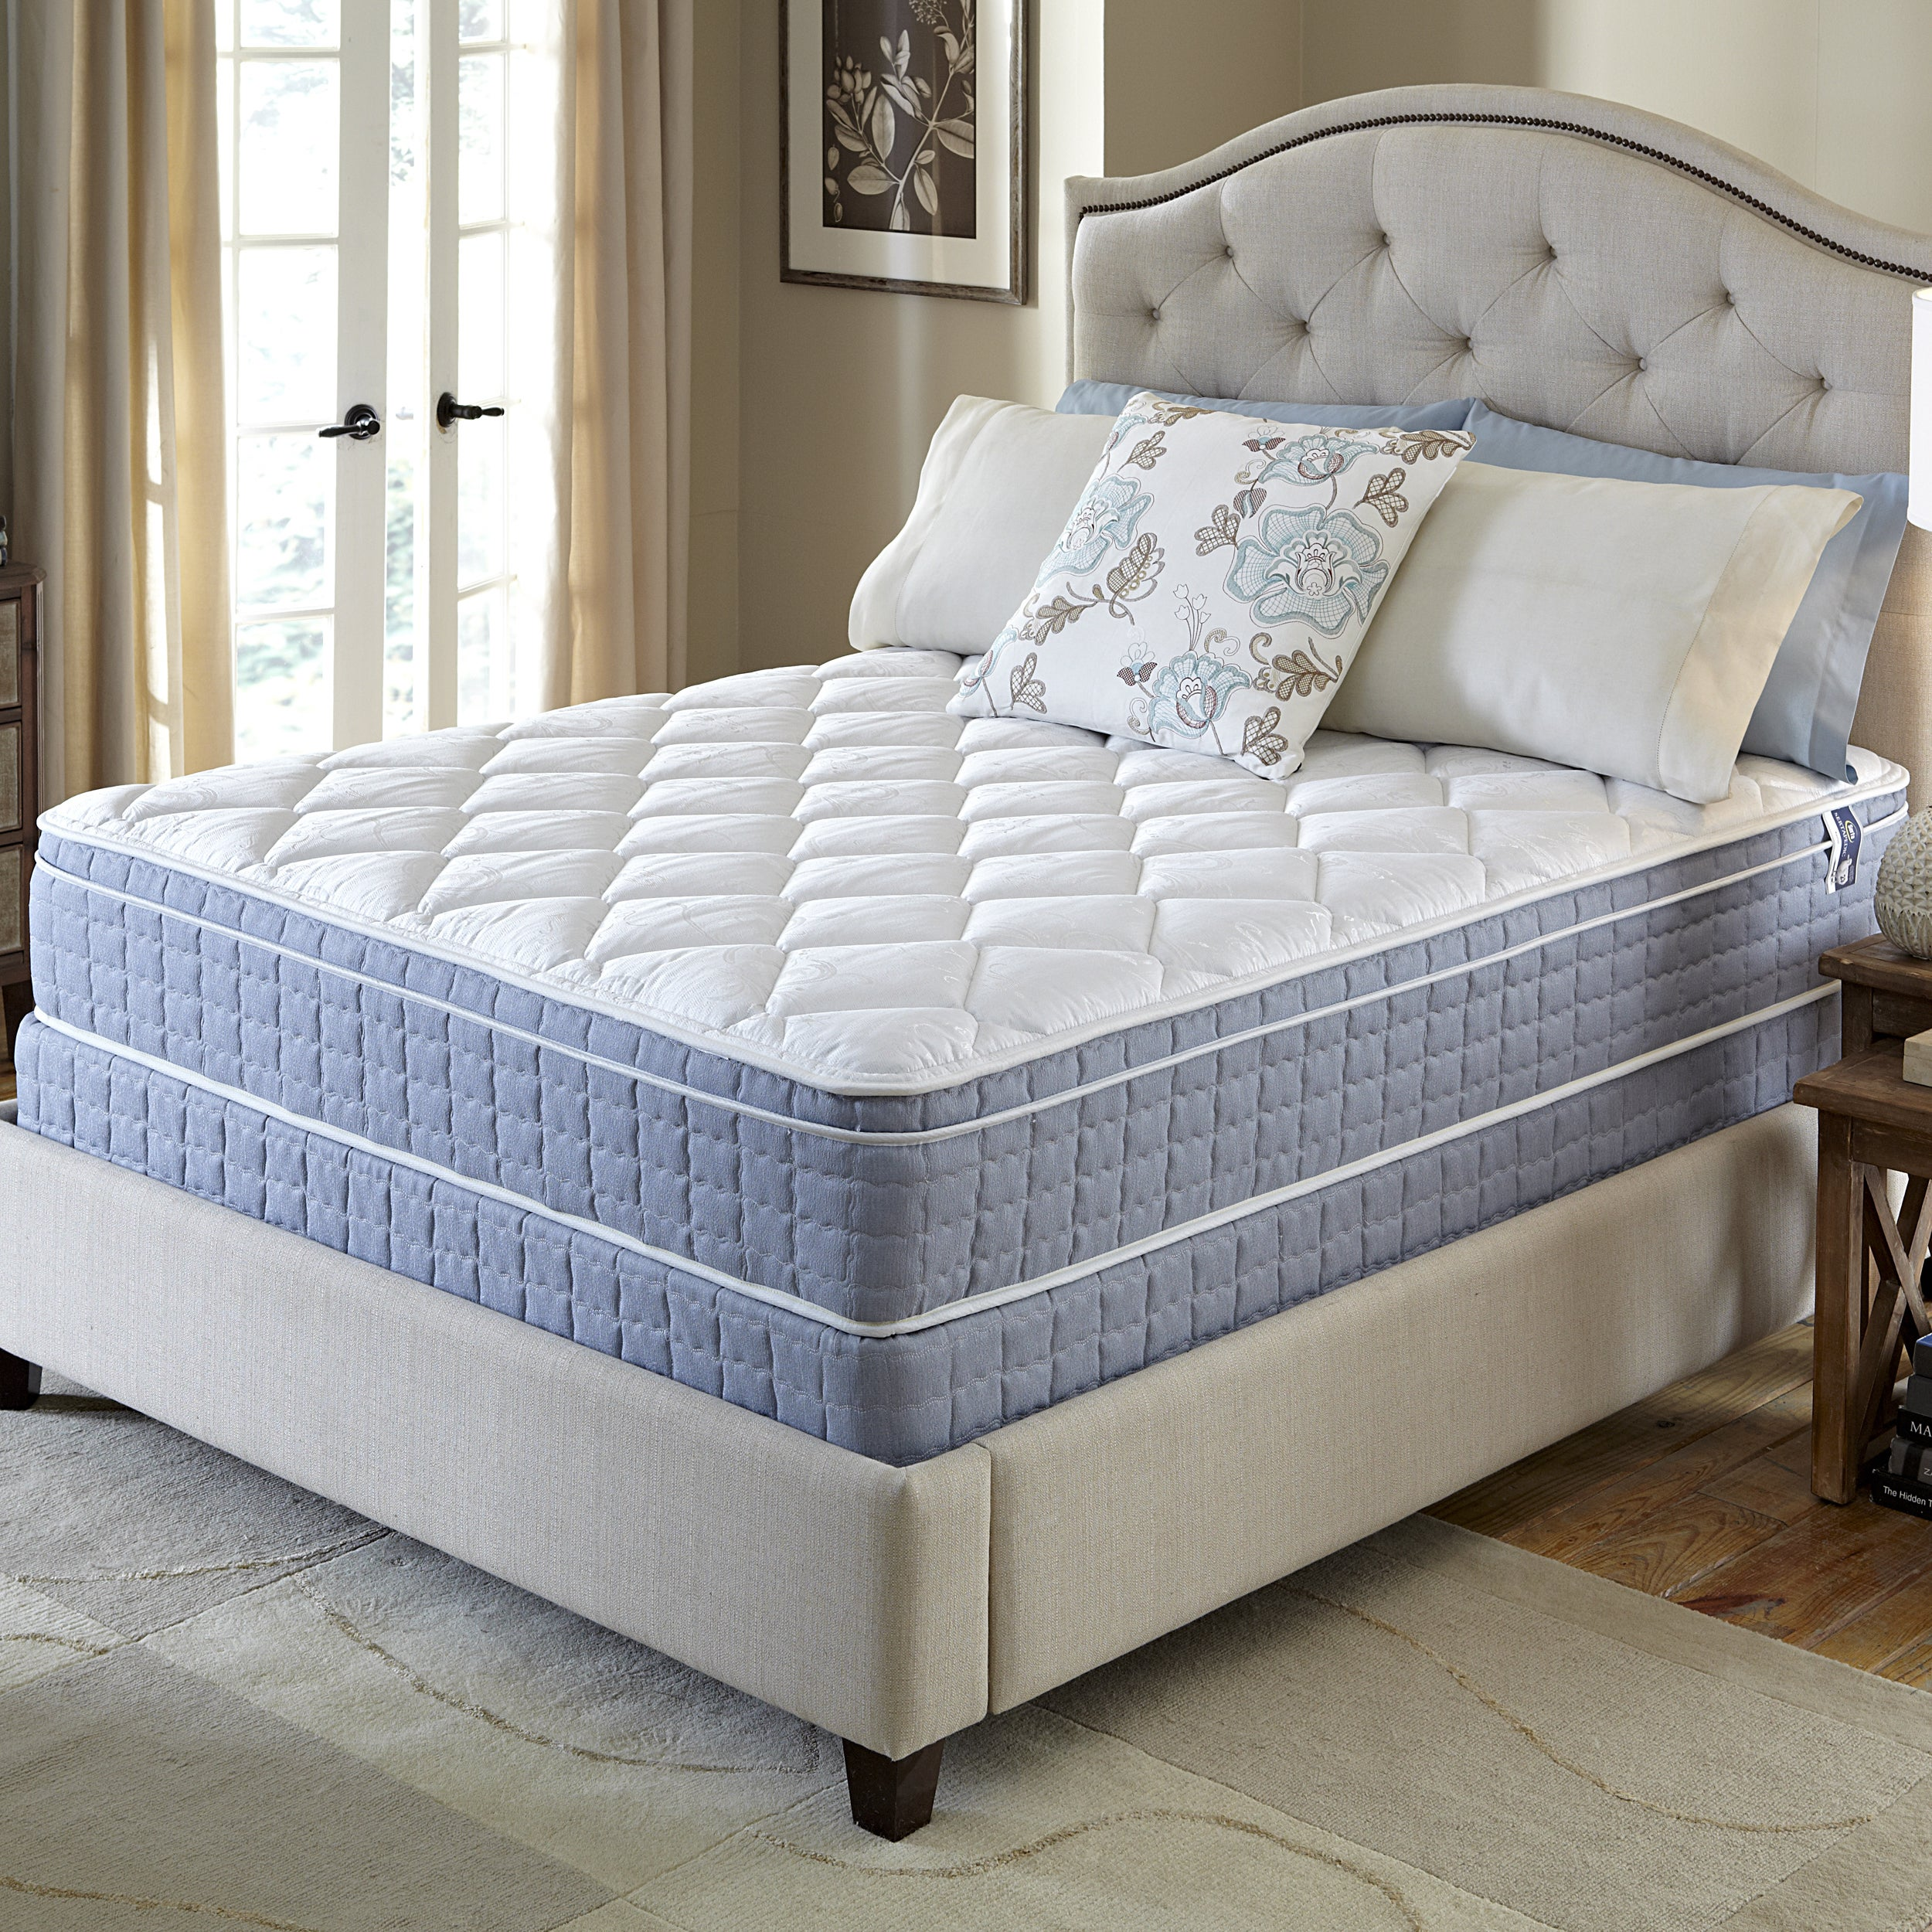 Serta Revival Euro Top Queen size Mattress and Foundation